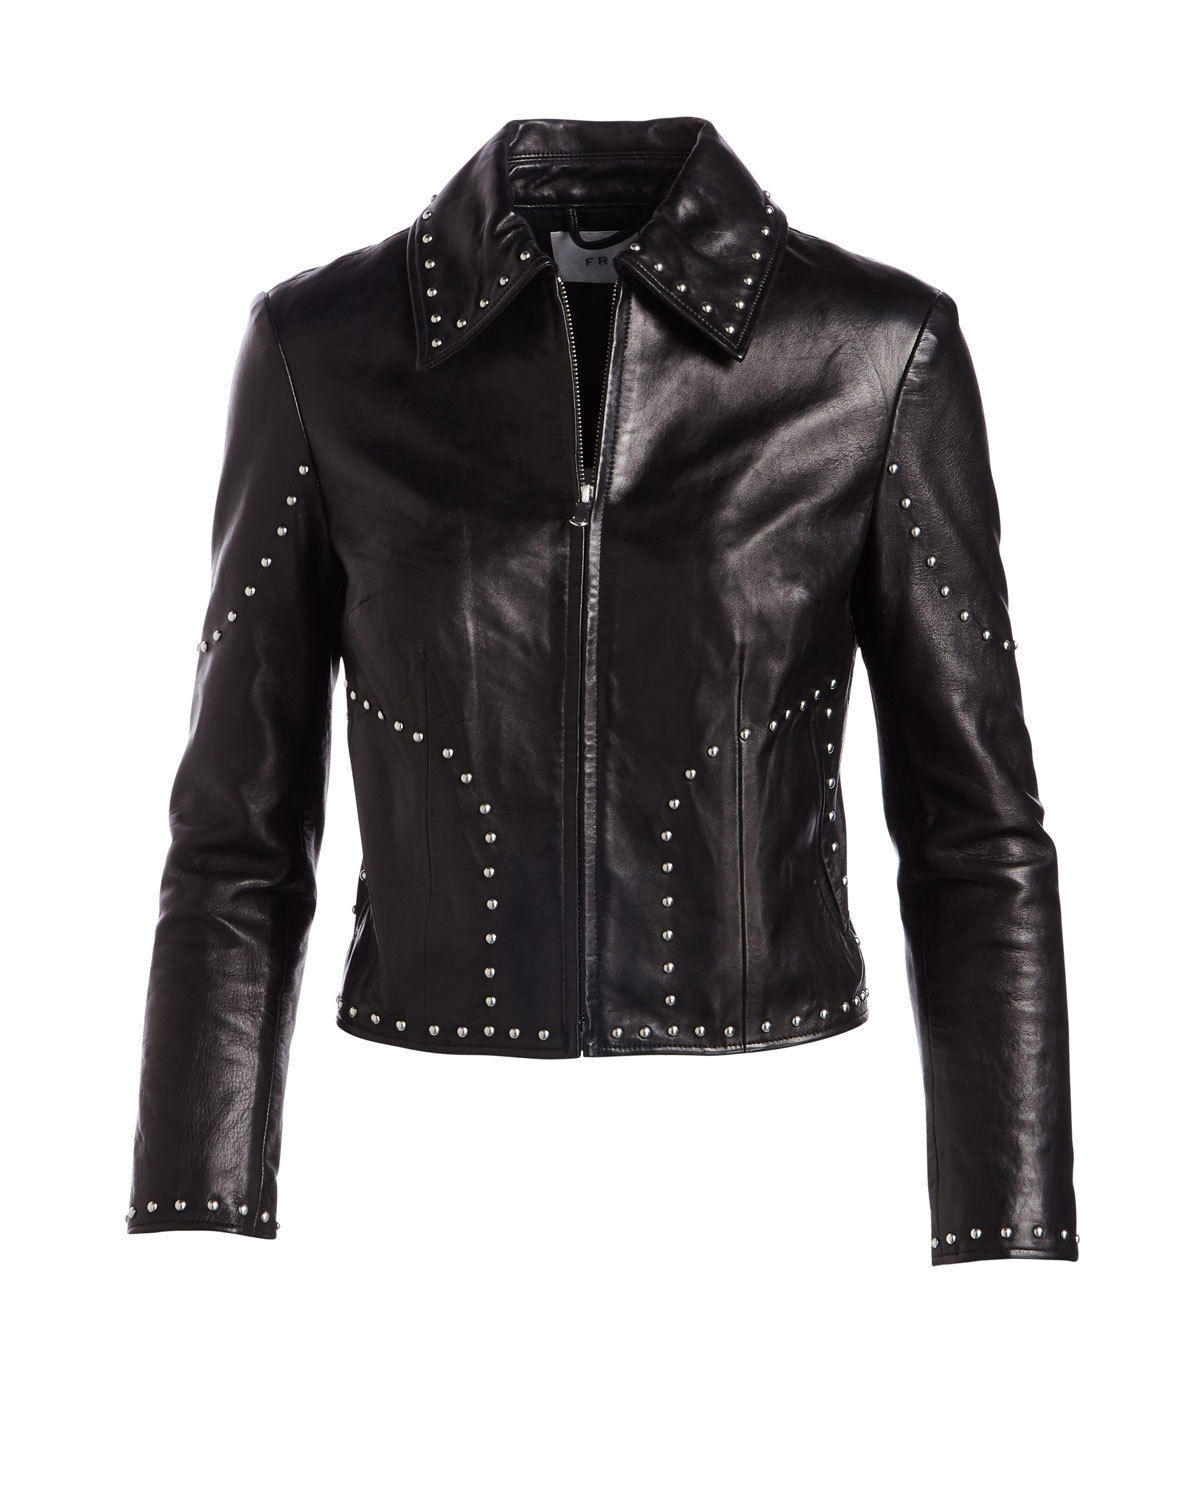 Stylish Black Cropped Real Leather Jacket with Fastening Zipper & Silver Studs